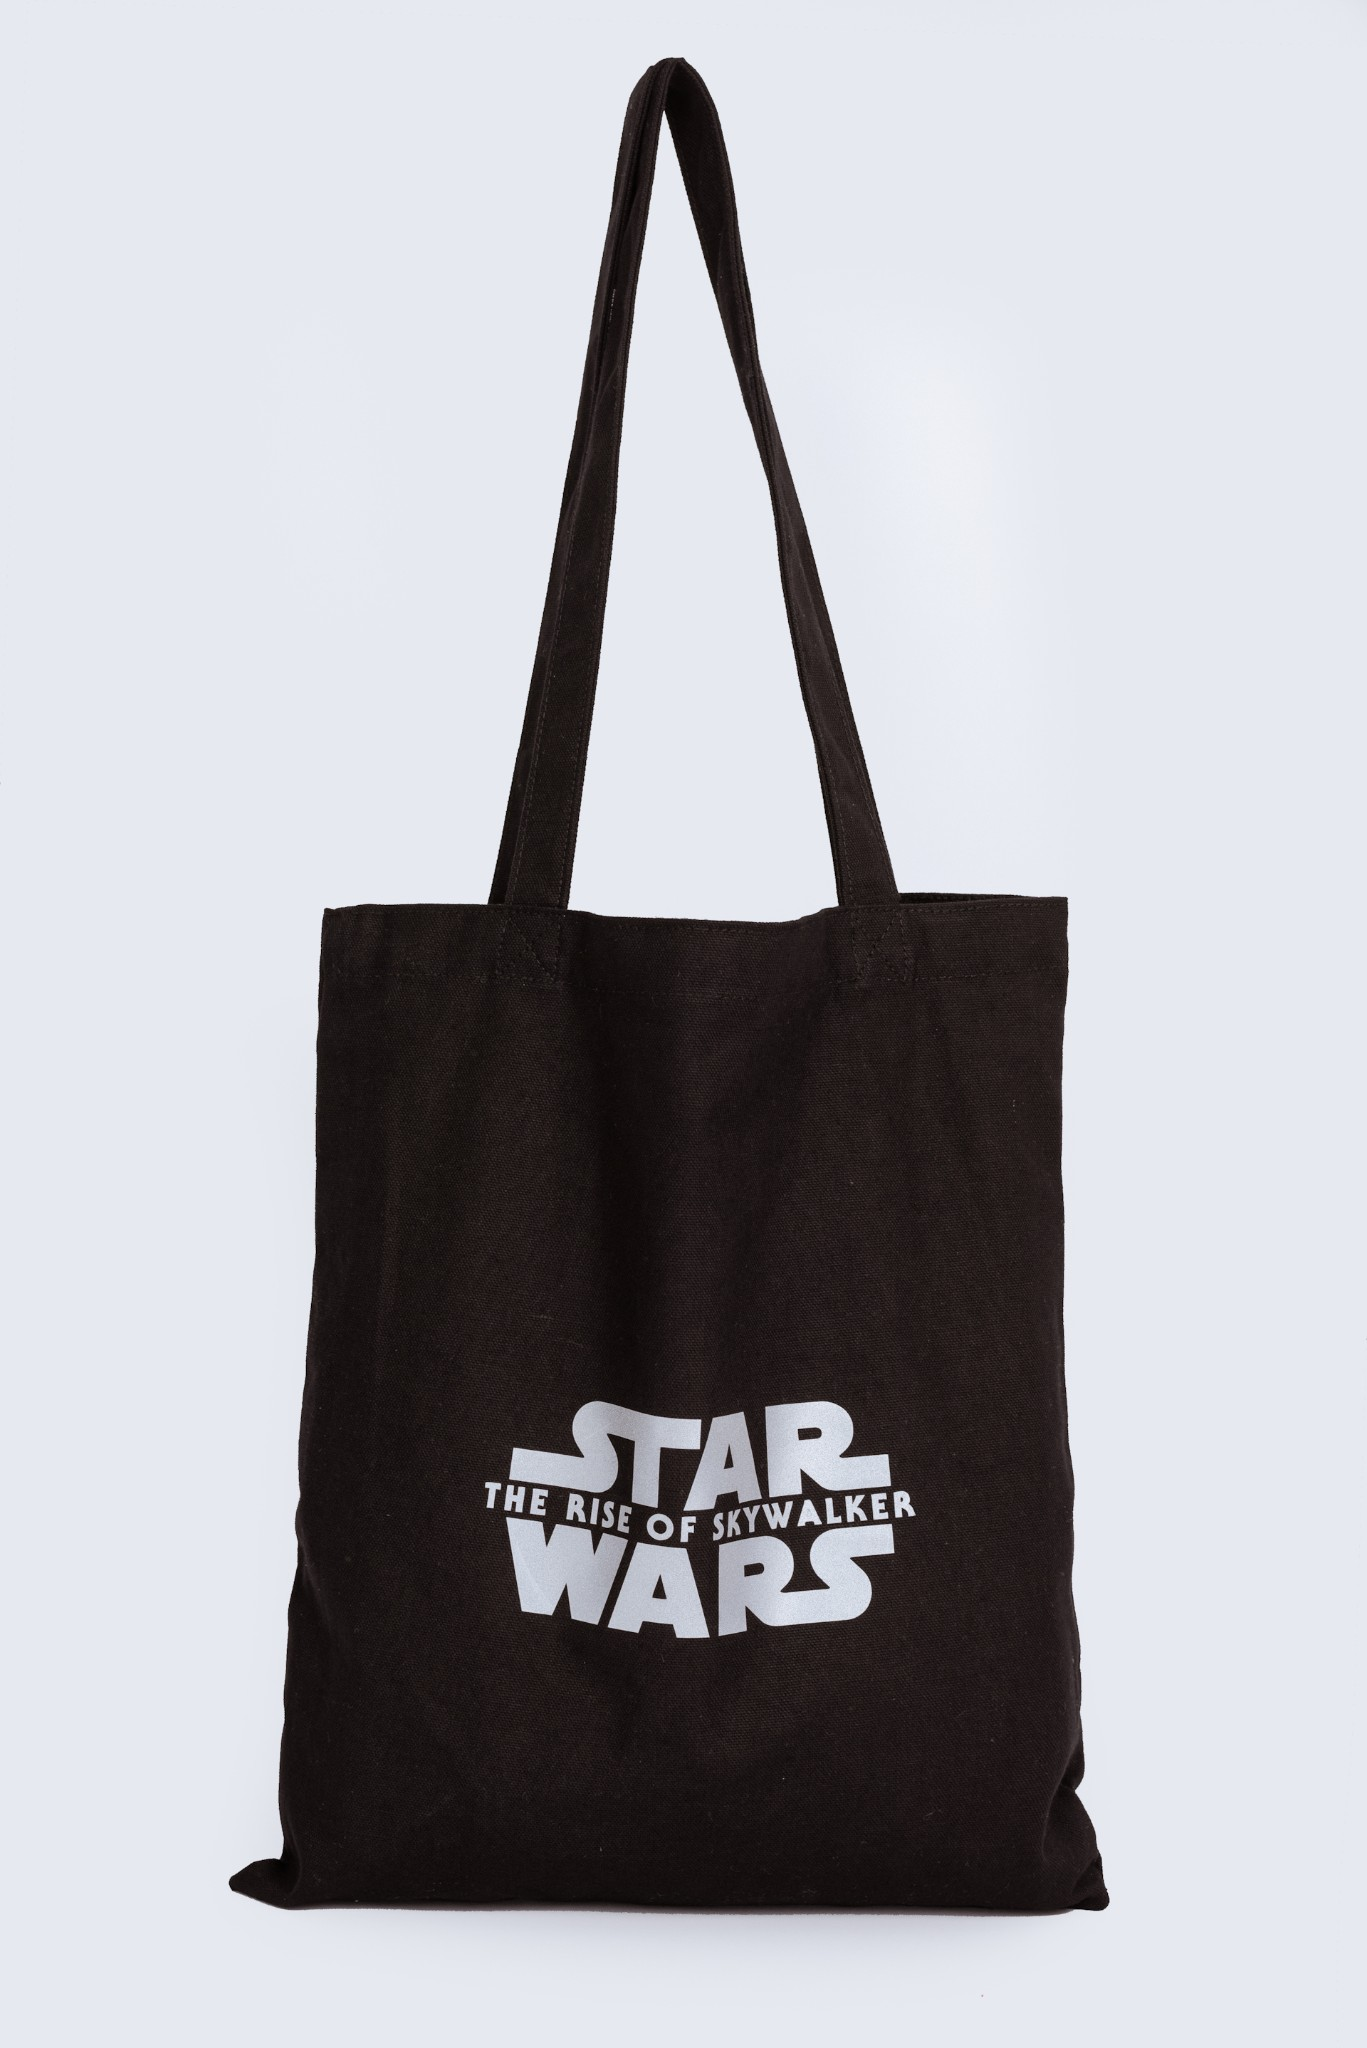 TÚI TOTE IN STAR WARS